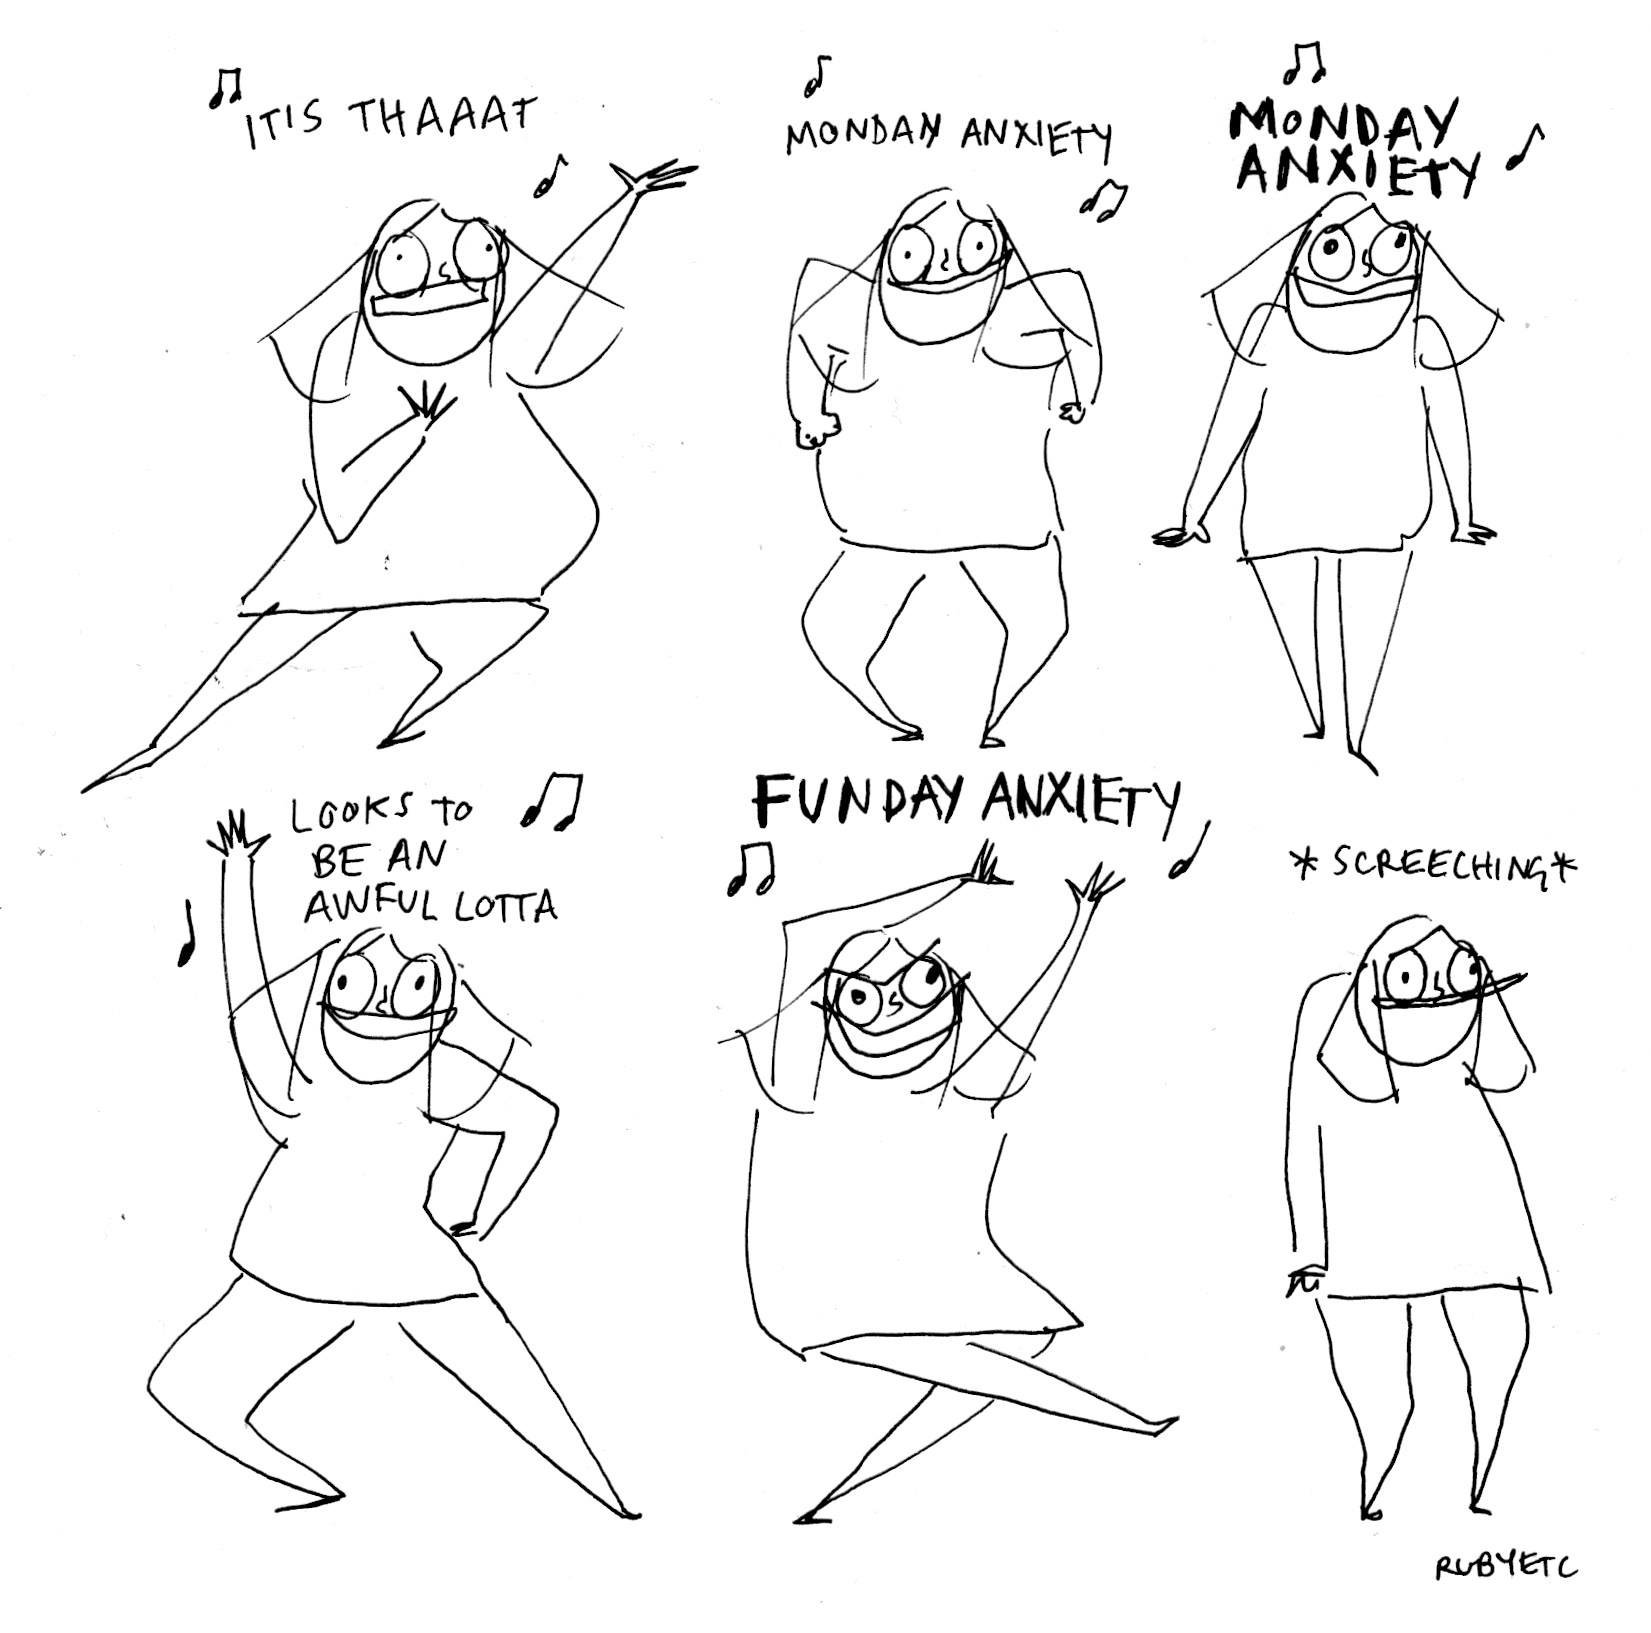 Rubyetc talks about mental health issues